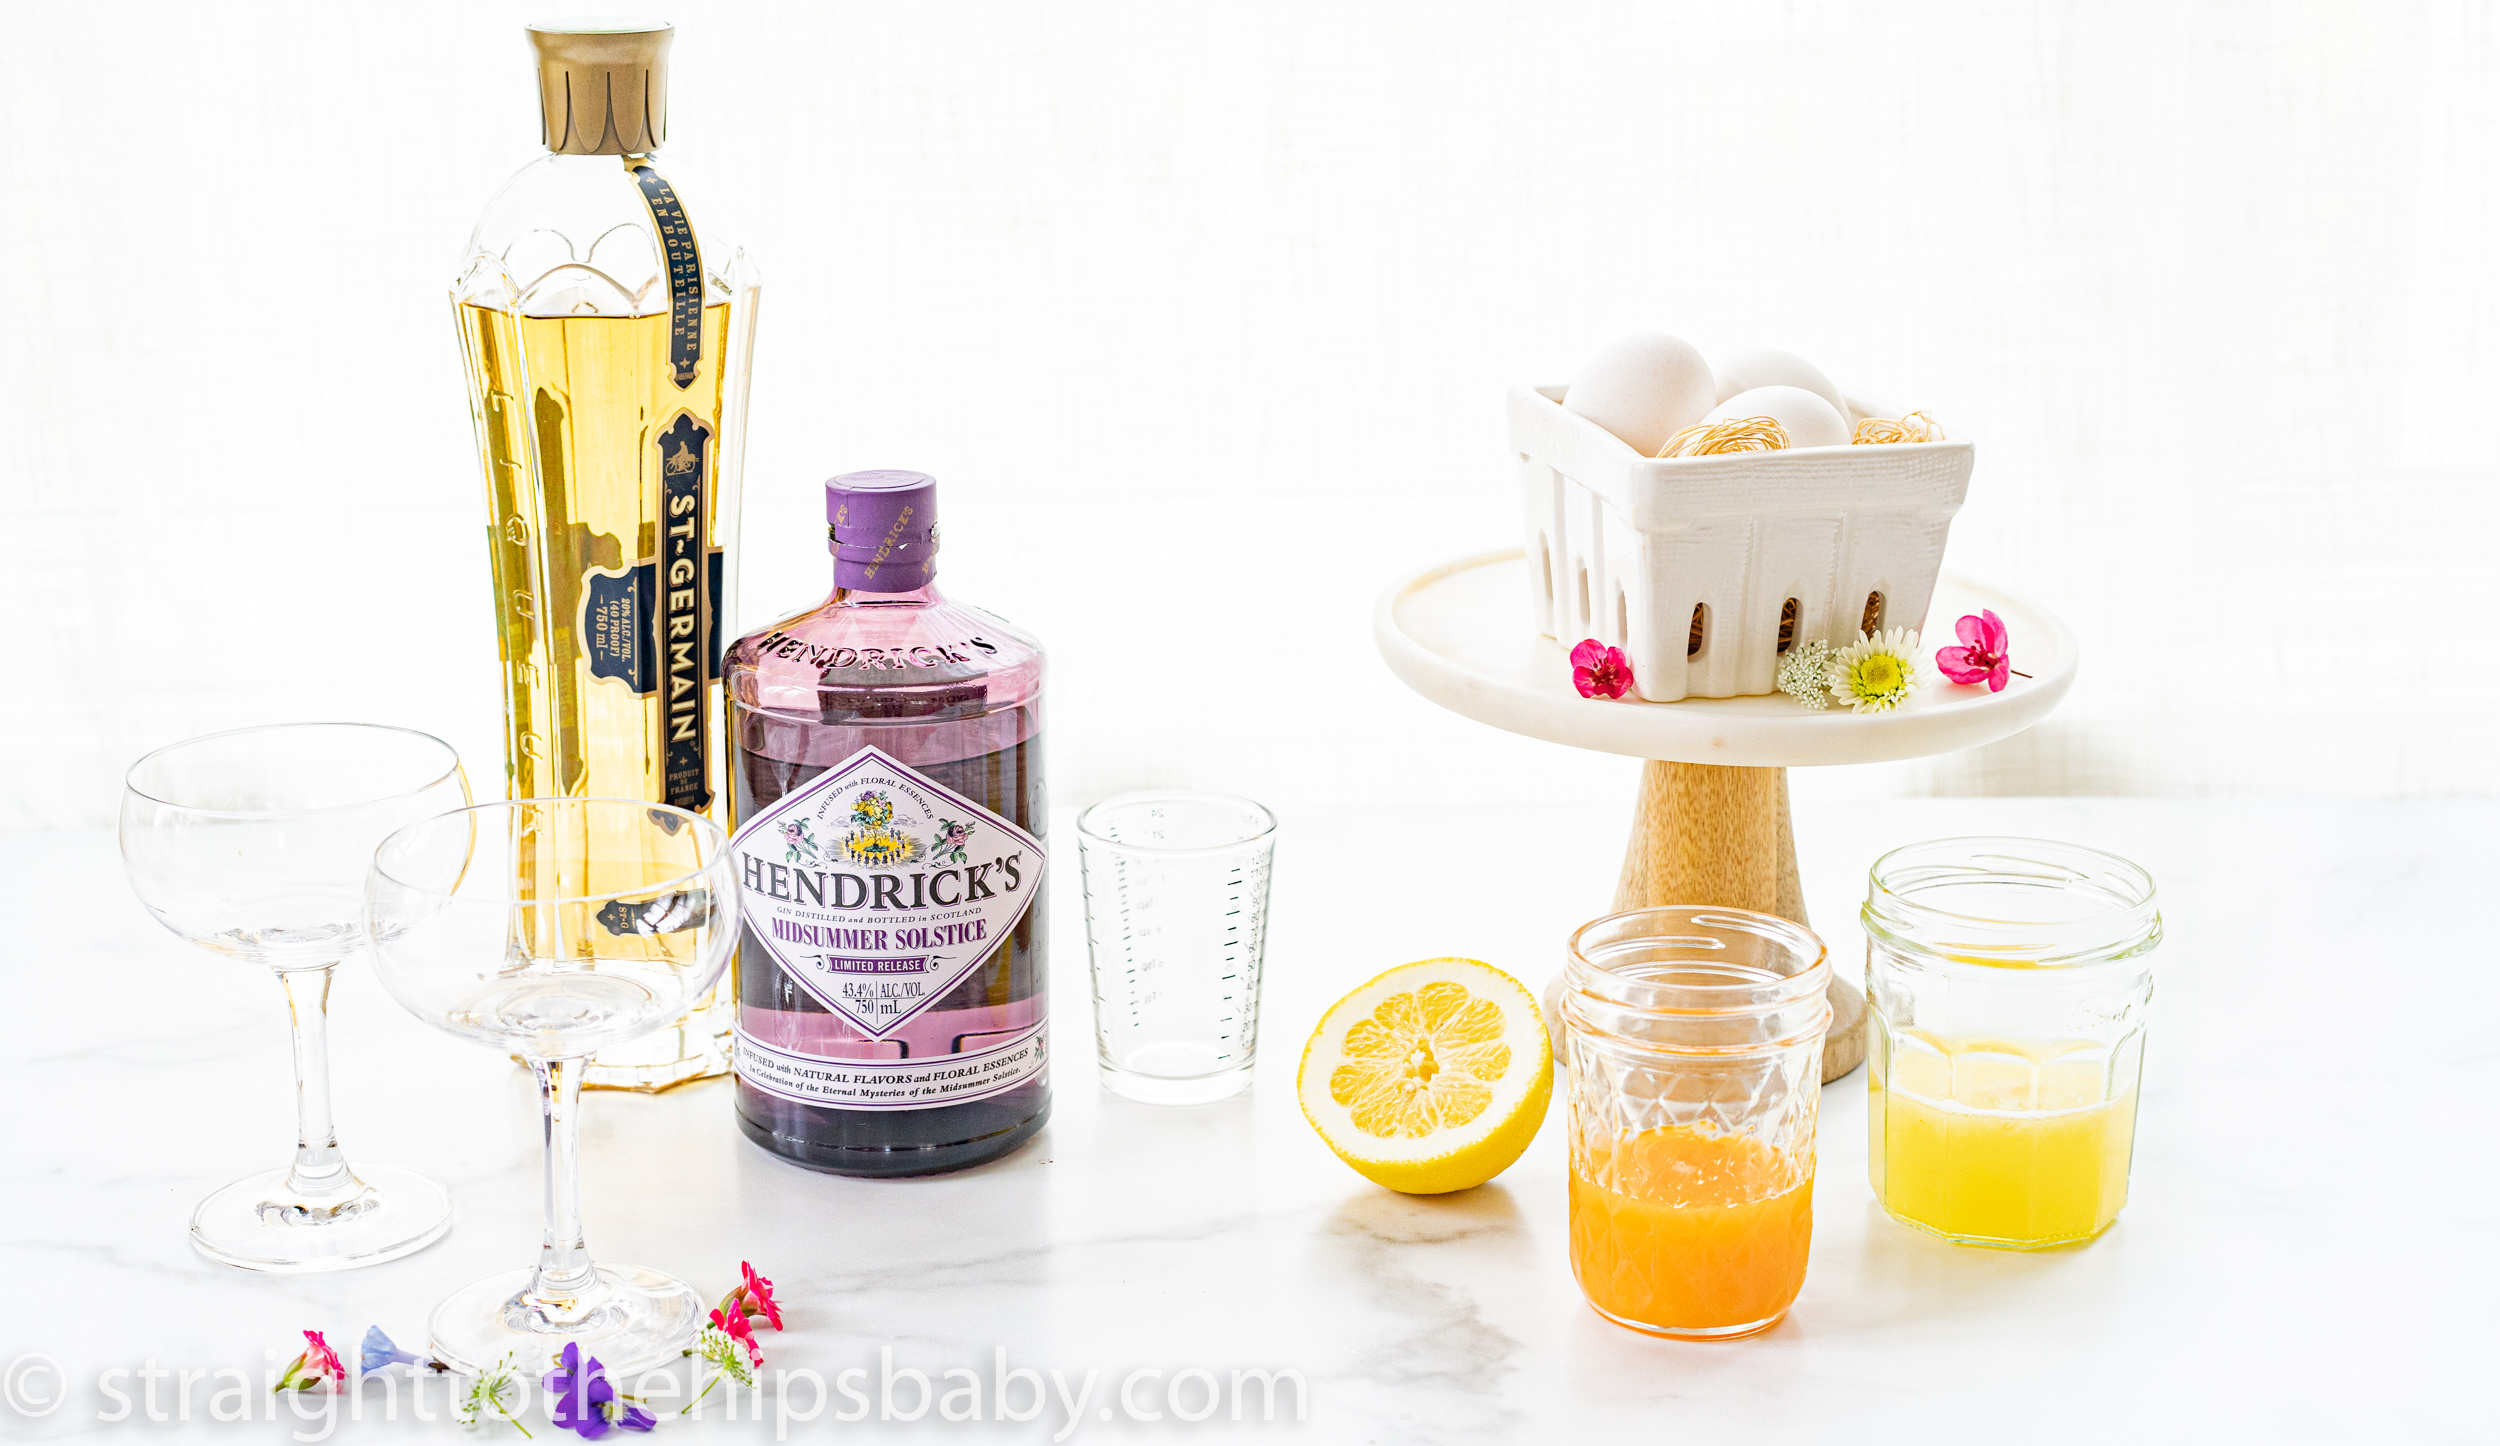 ingredients flat lay including Hendrick's gin, Dt Germain, and fresh citrus